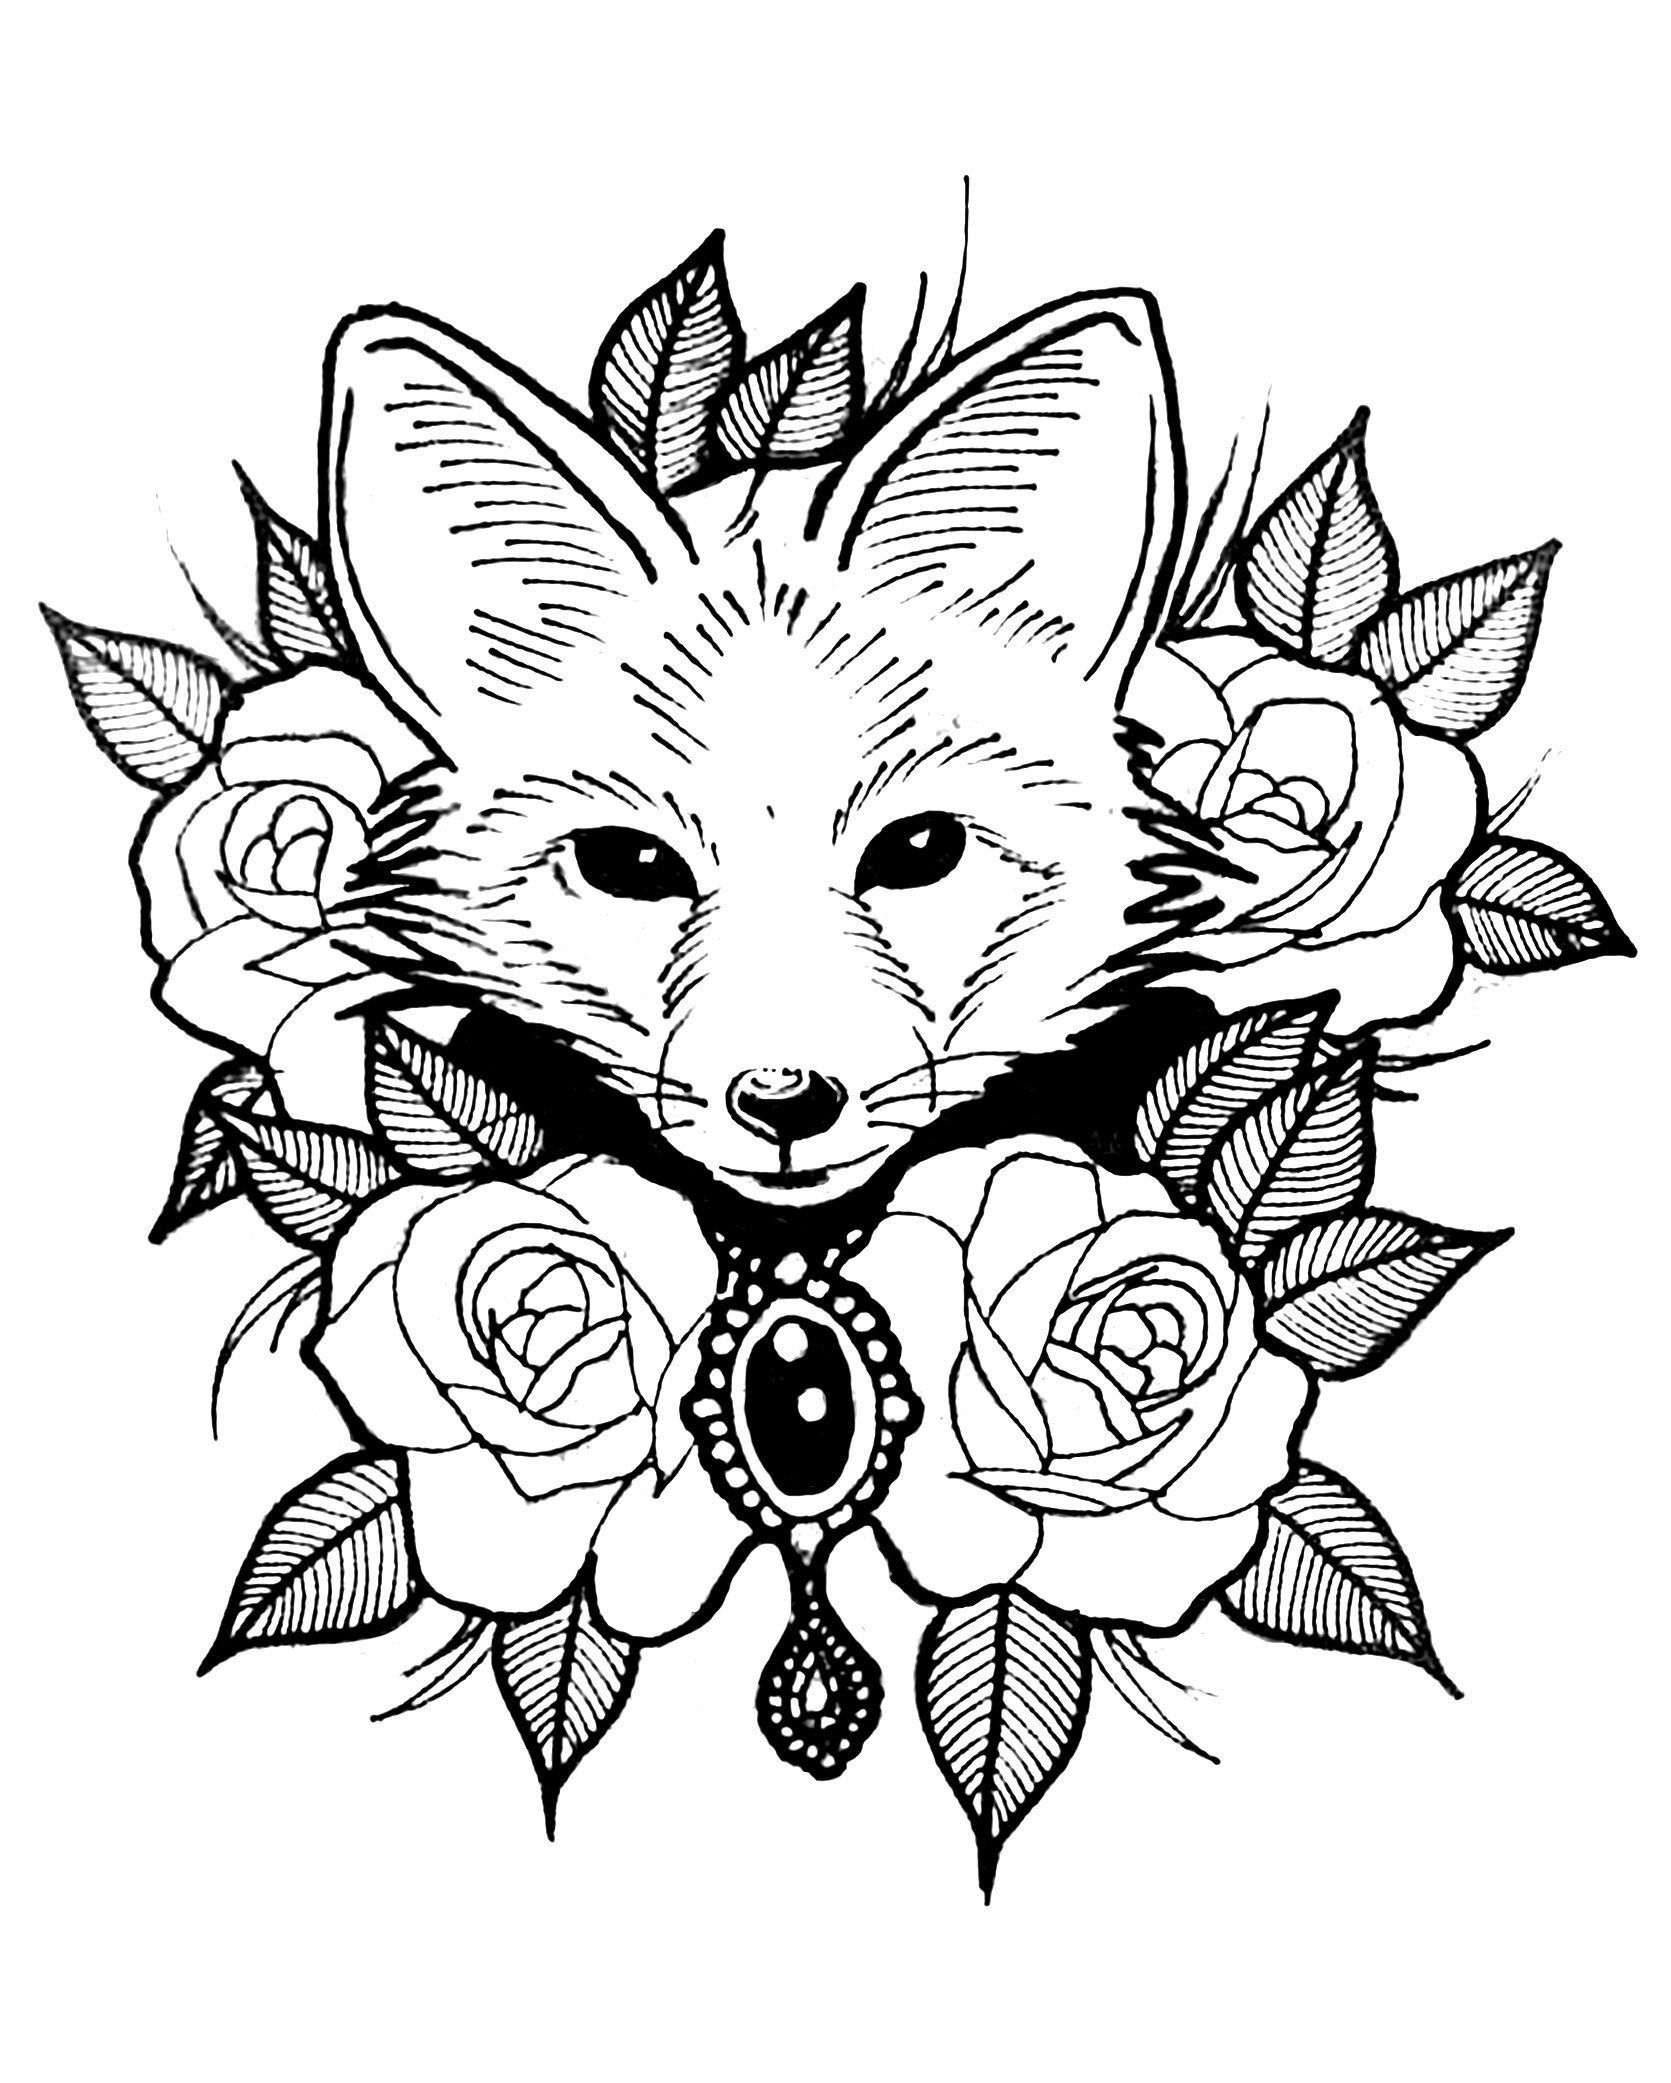 Coloring Pages Animals Cute Coloring Pages Cute Baby Animal Coloring For Kids Farm In 2020 Fox Coloring Page Animal Coloring Books Farm Animal Coloring Pages